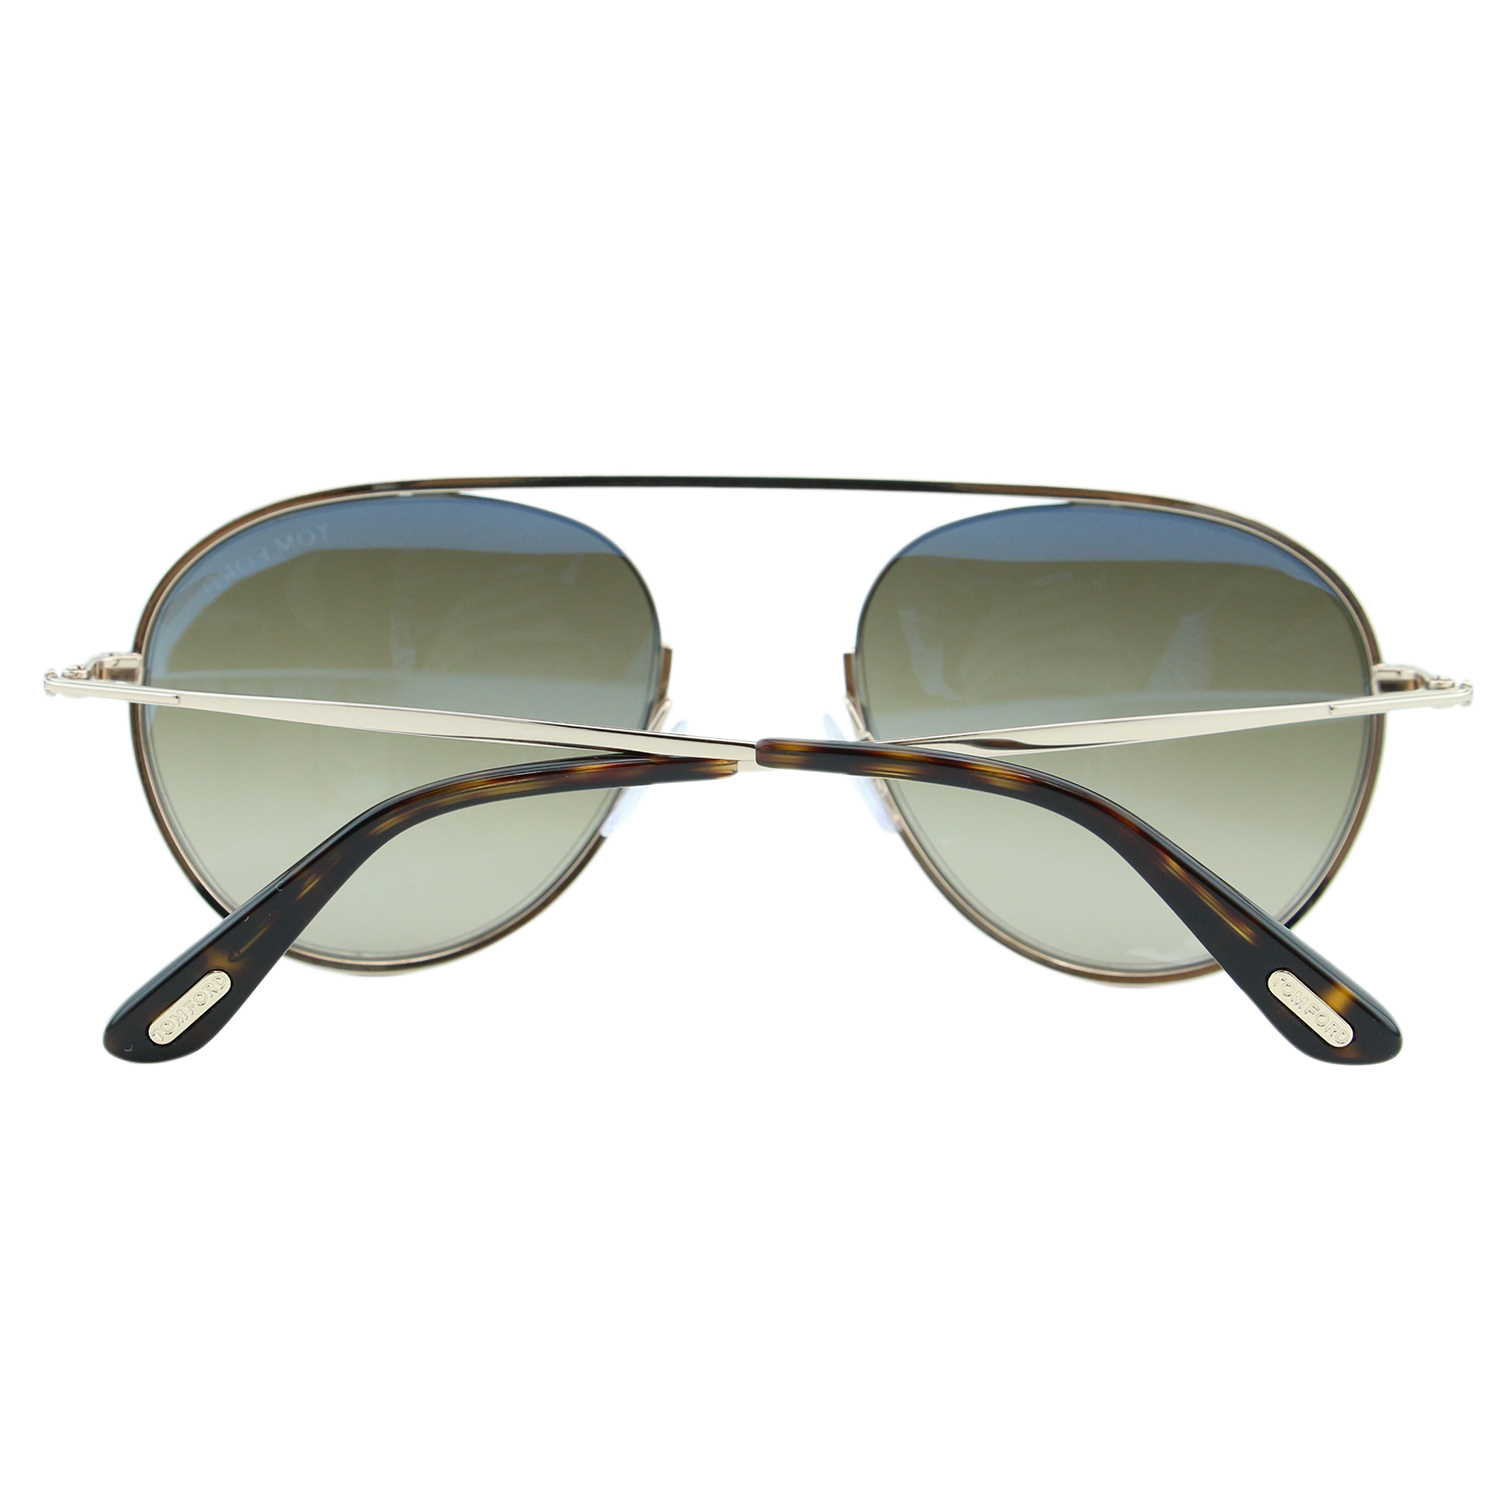 f4ebea0f8aa5 Tom Ford Keith-02 TF-599 28K Men Gold Round Cut-Out Bridge Brow-Bar  Sunglasses